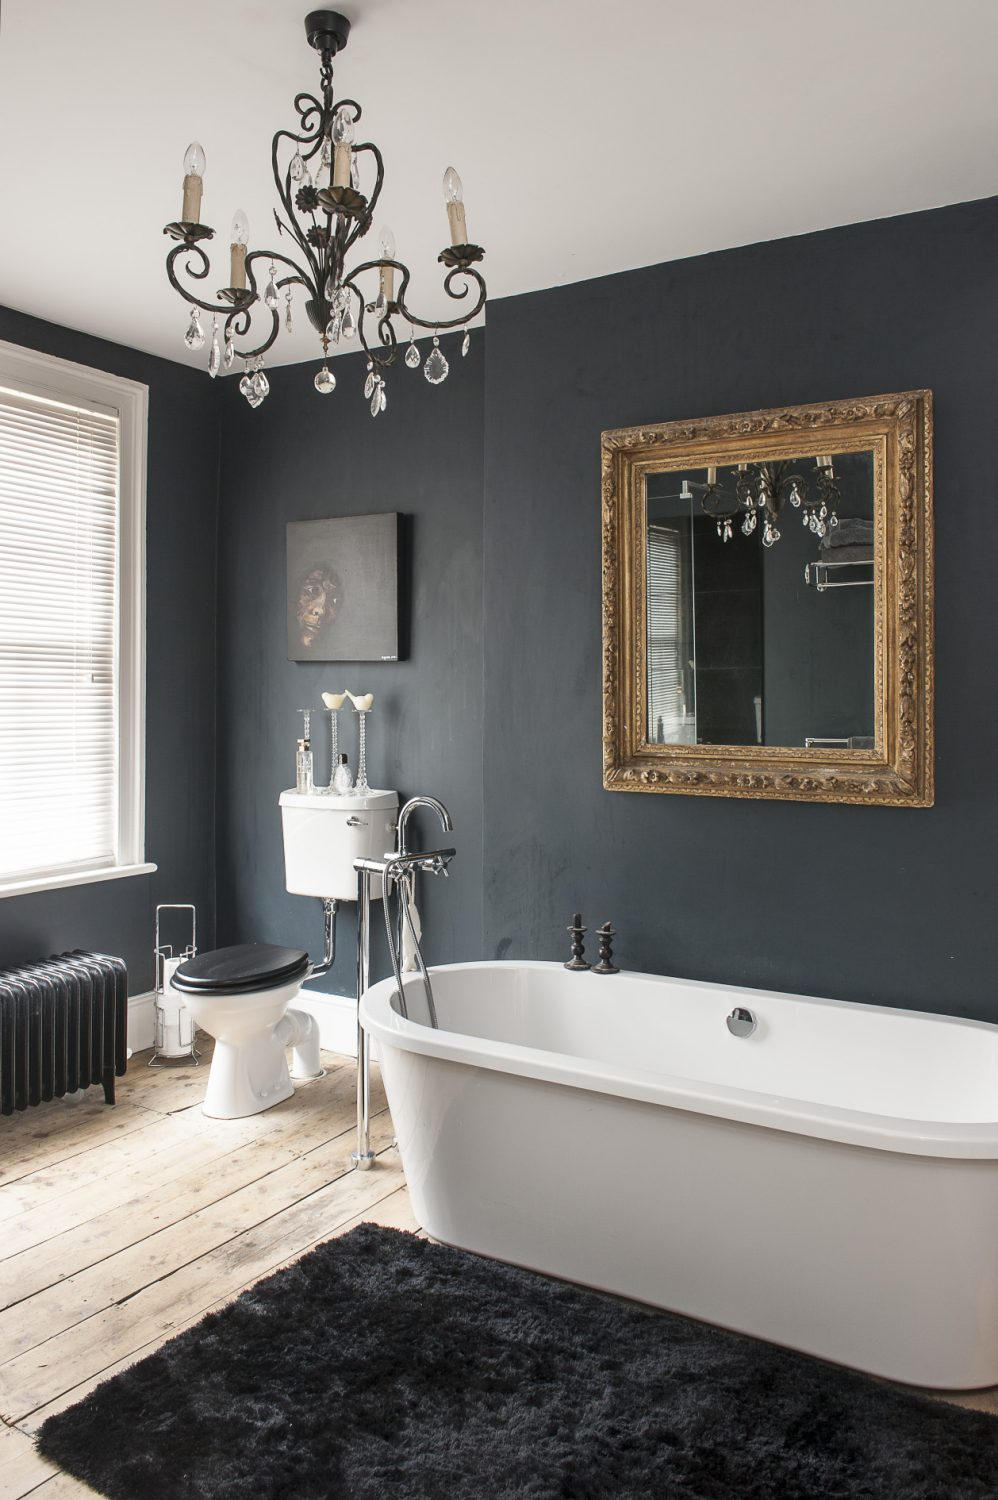 The juxtaposition of light and dark in this house is emphasised in the bathrooms. There are two good-sized rooms – one white and one black – both have a striking painting in a similar position; in the white bathroom there's a picture of a skull by Ben Eine and in the black, a raw and intense painting by Alice Maylam titled 'Out of the Dark' which features a face protruding into the light and provided the inspiration for Rob's bold colour choice...